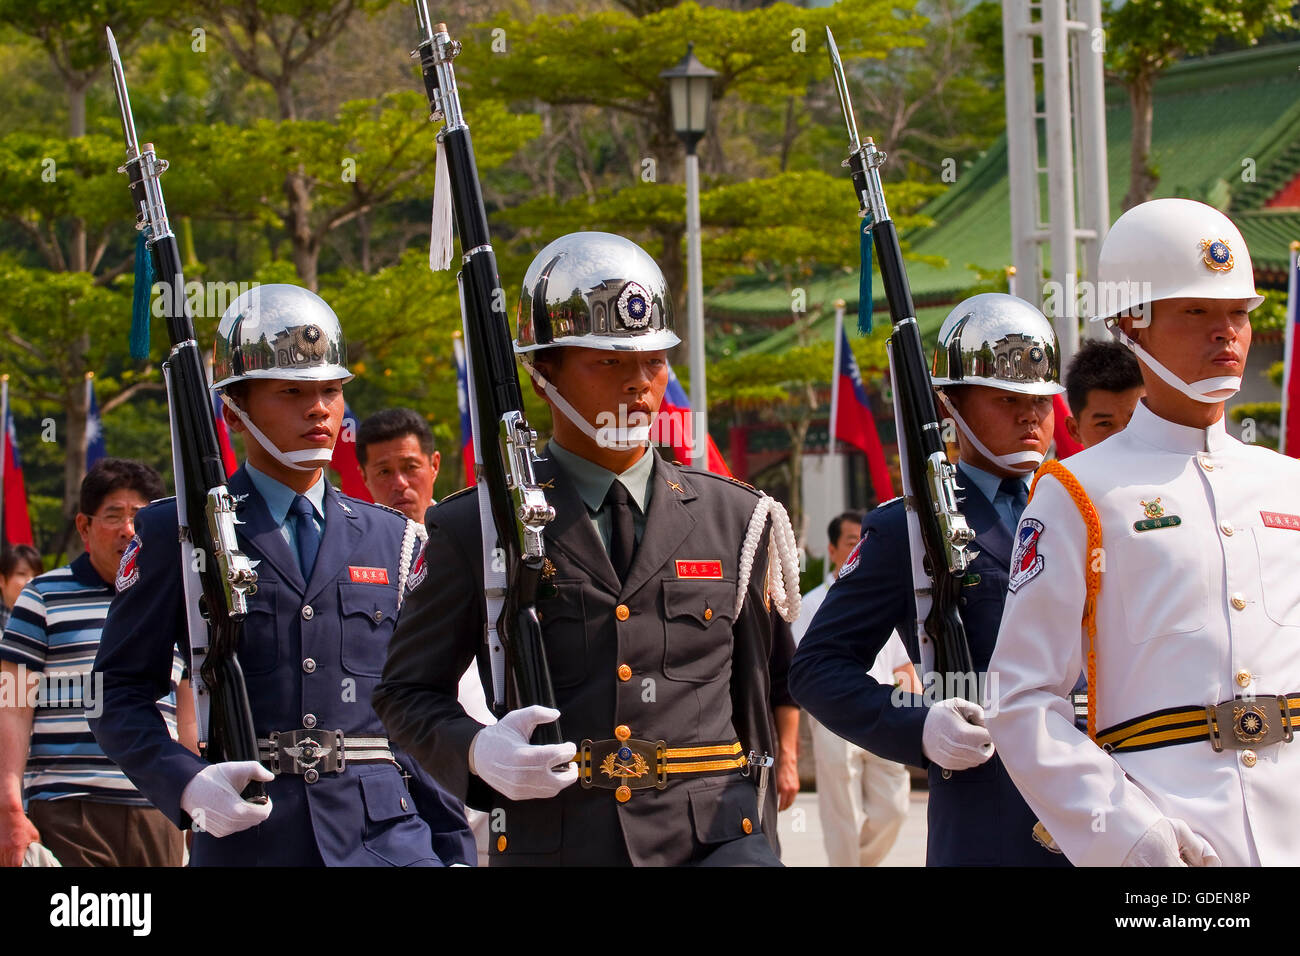 Change of the guard, memorial monument, Taipeh, Taiwan - Stock Image